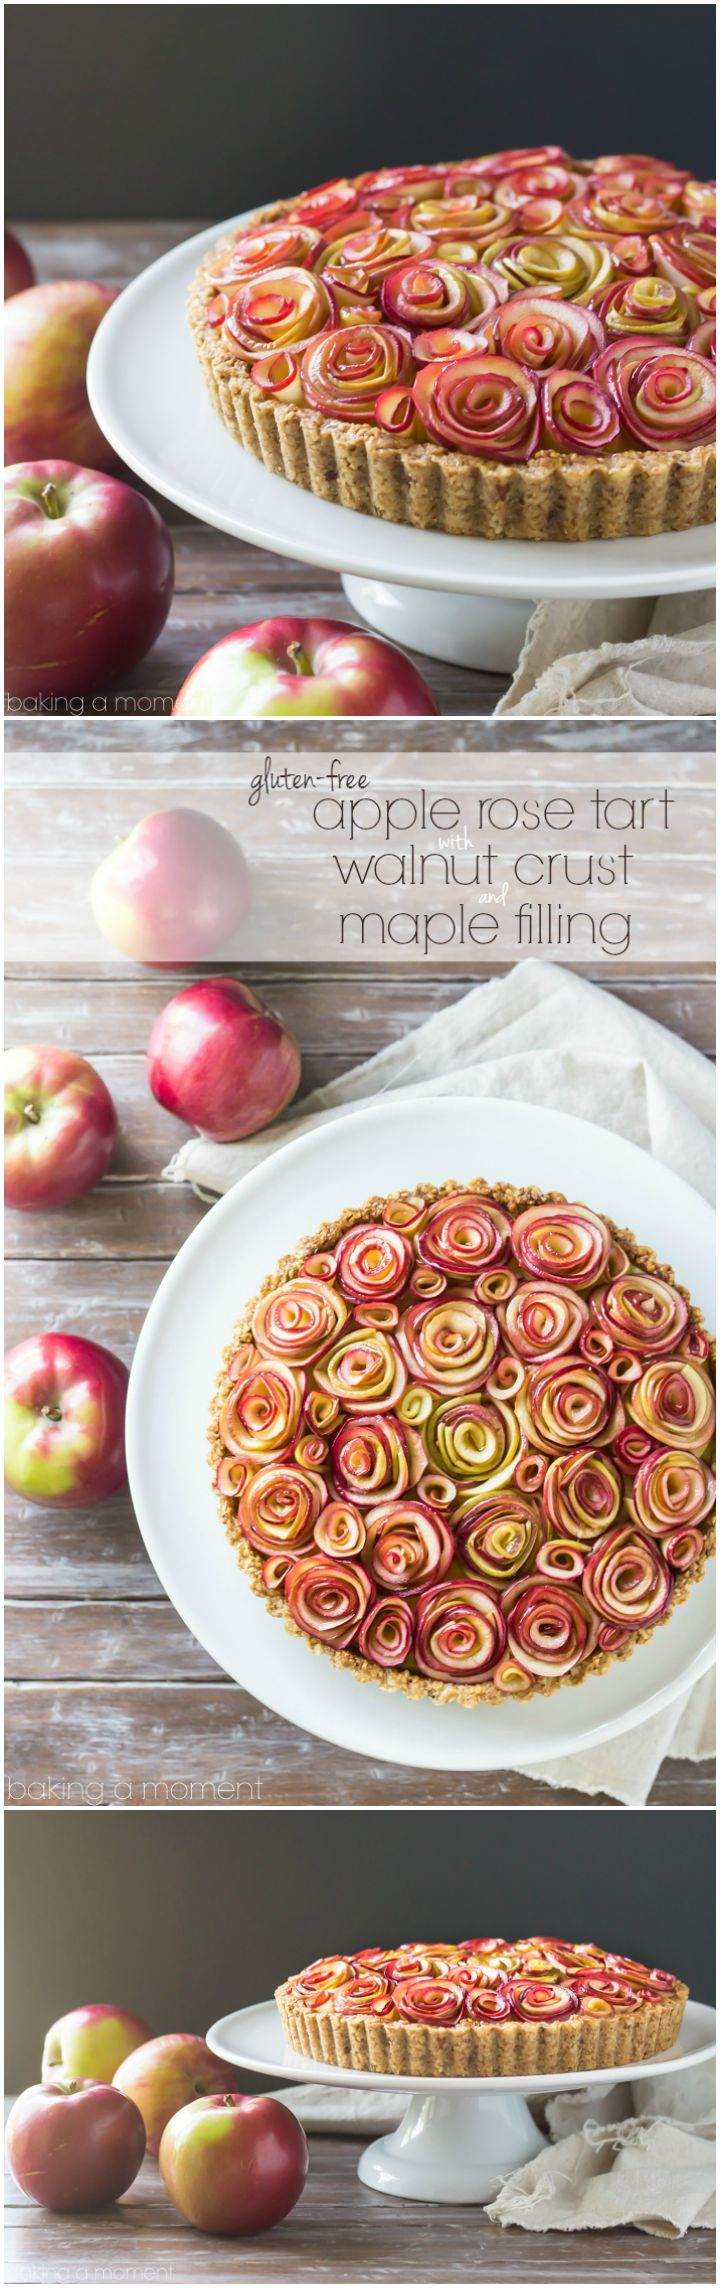 Your guests will be wowed by this gorgeous apple tart of roses, with a toasty walnut crust and a silky